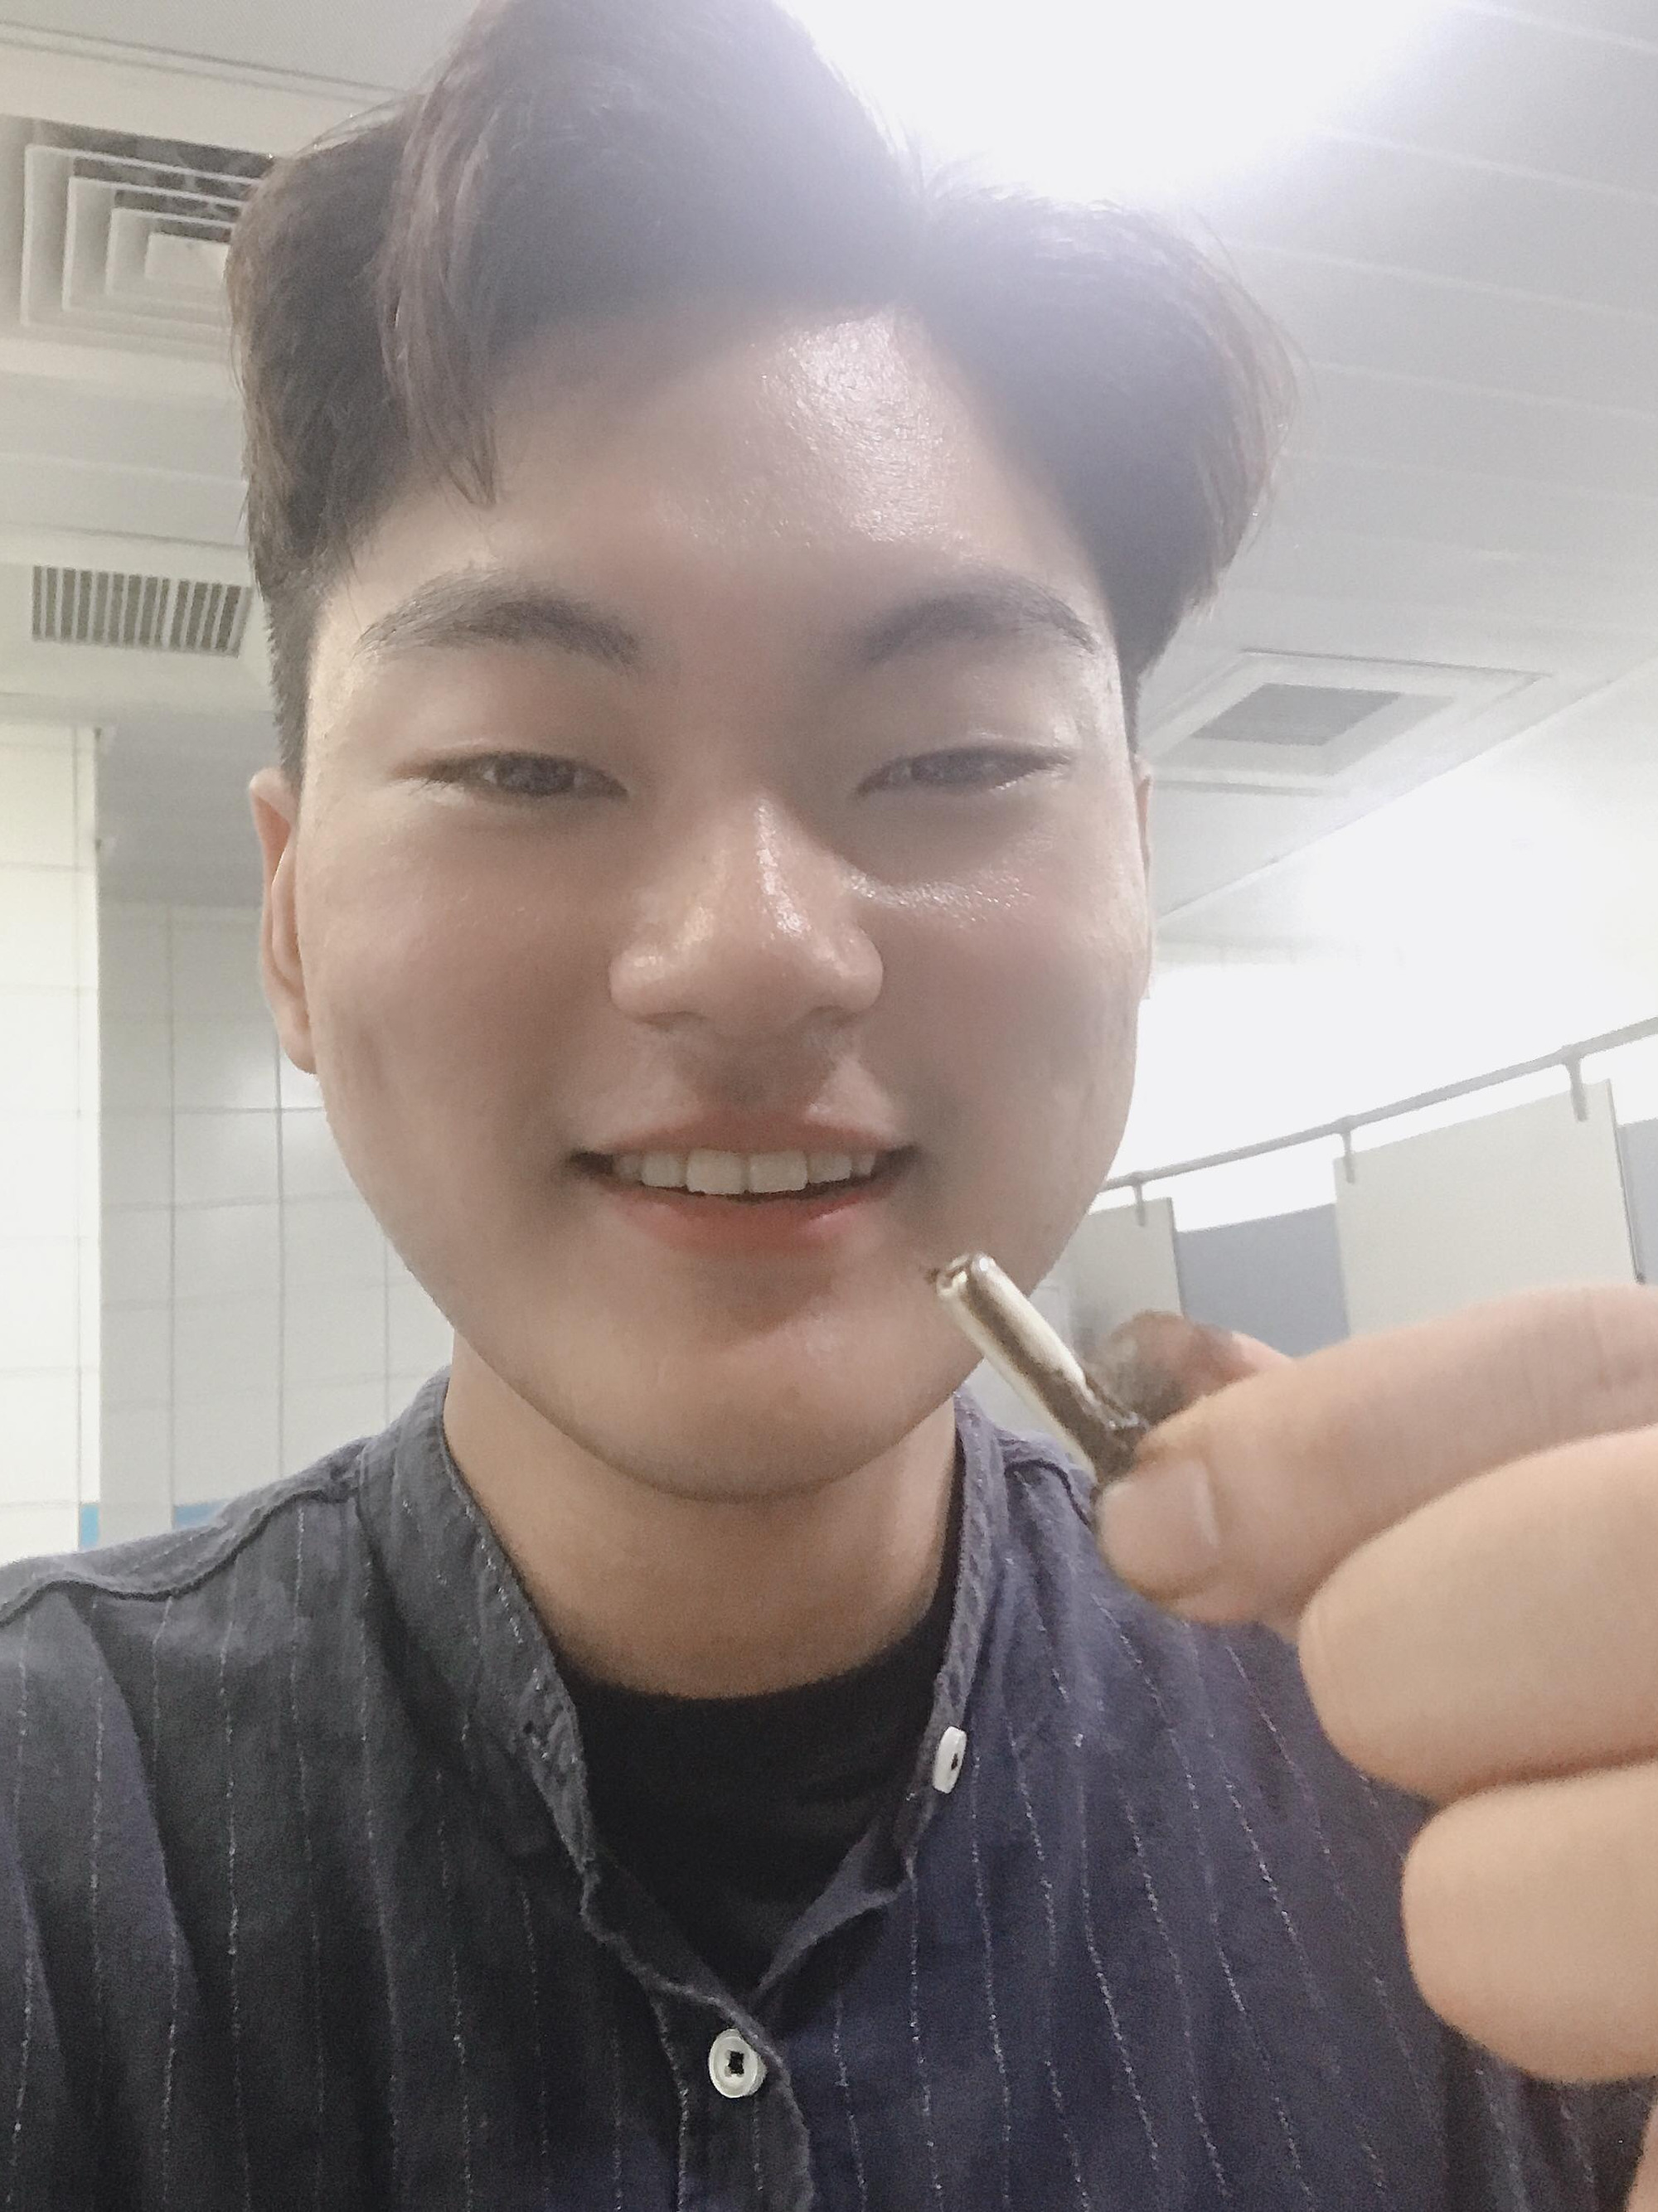 Guy swallows airpod then poos it out